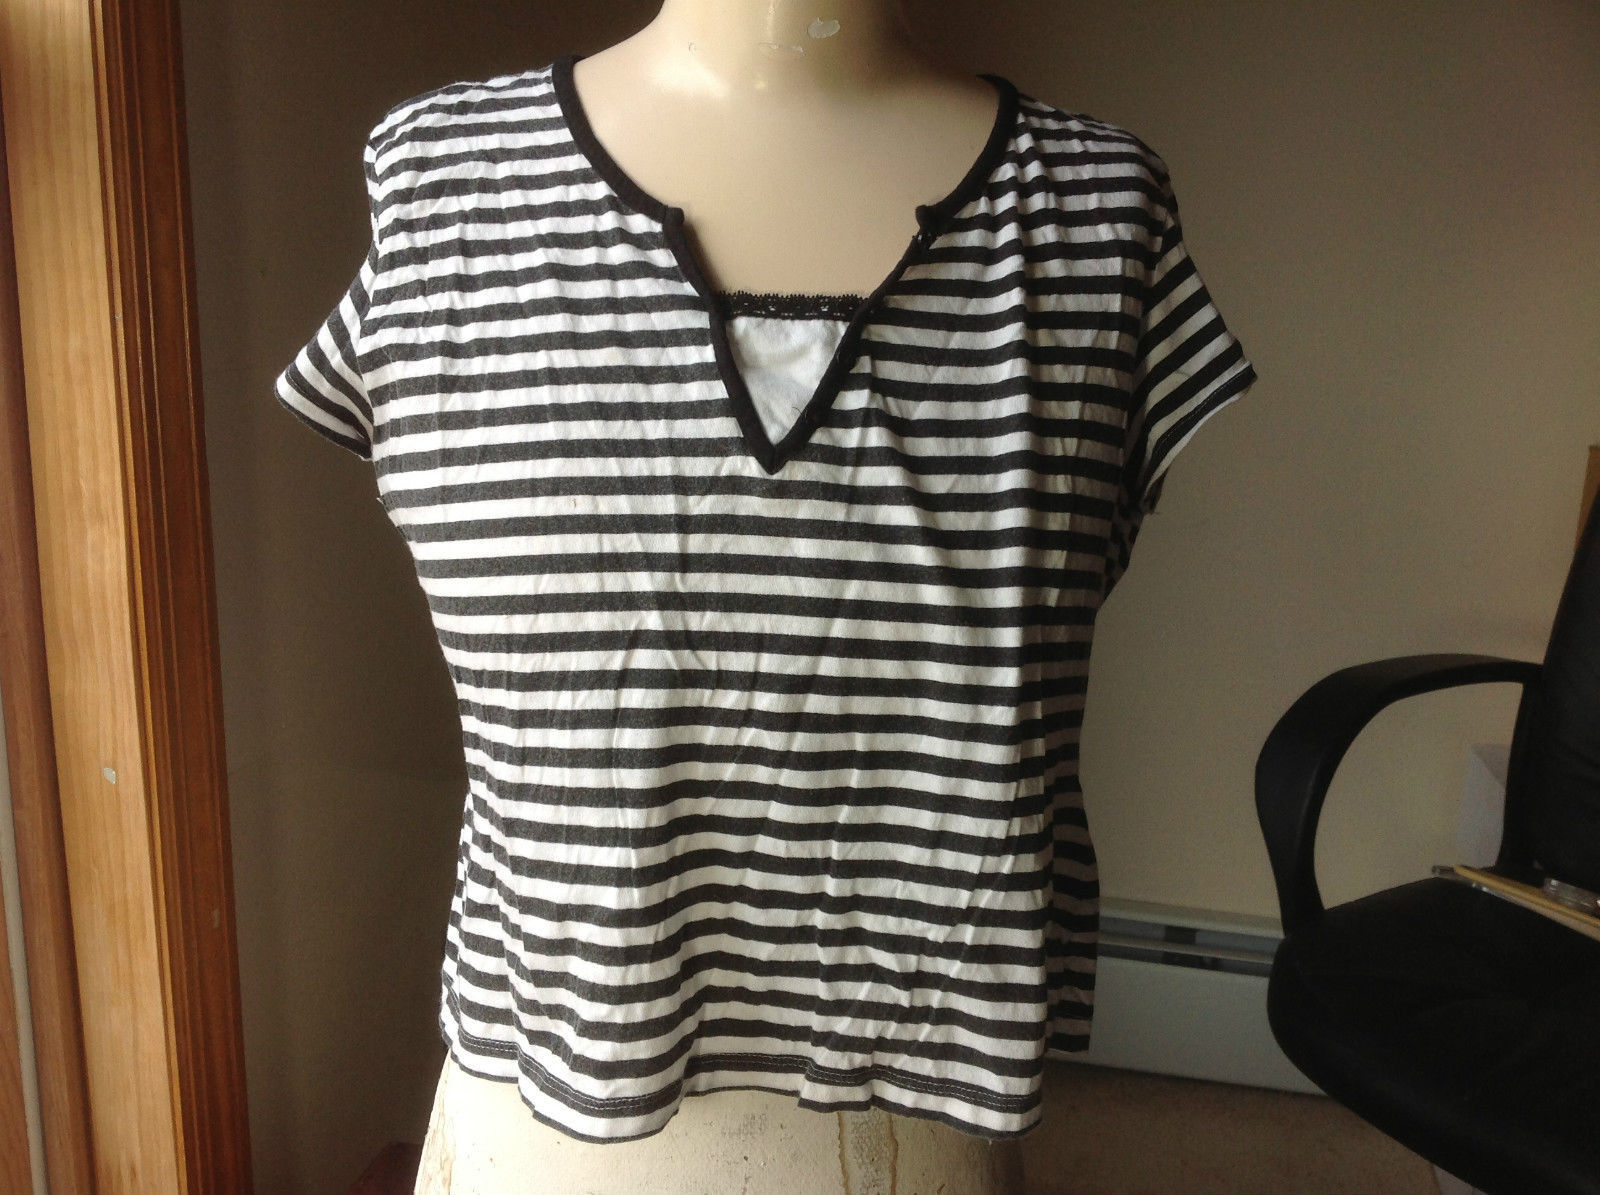 Bay Studio Khakis Black and White Striped Lined V-Neck Top Size Petite Large